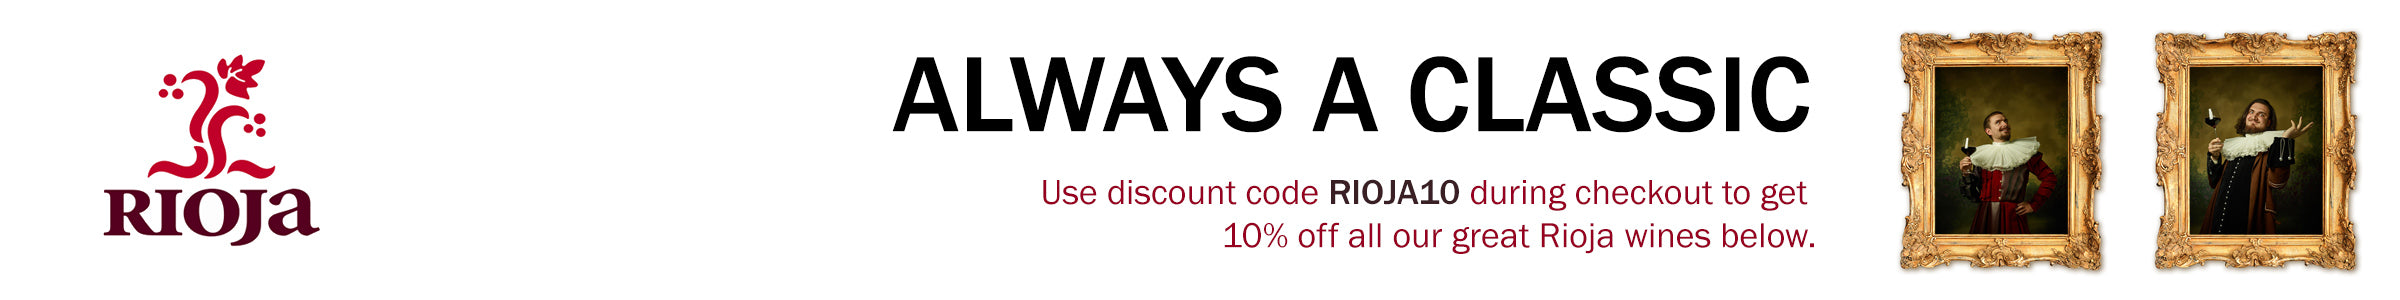 Use discount code RIOJA10 in the checkout for 10% off our Rioja's (Not applicable to case rates)